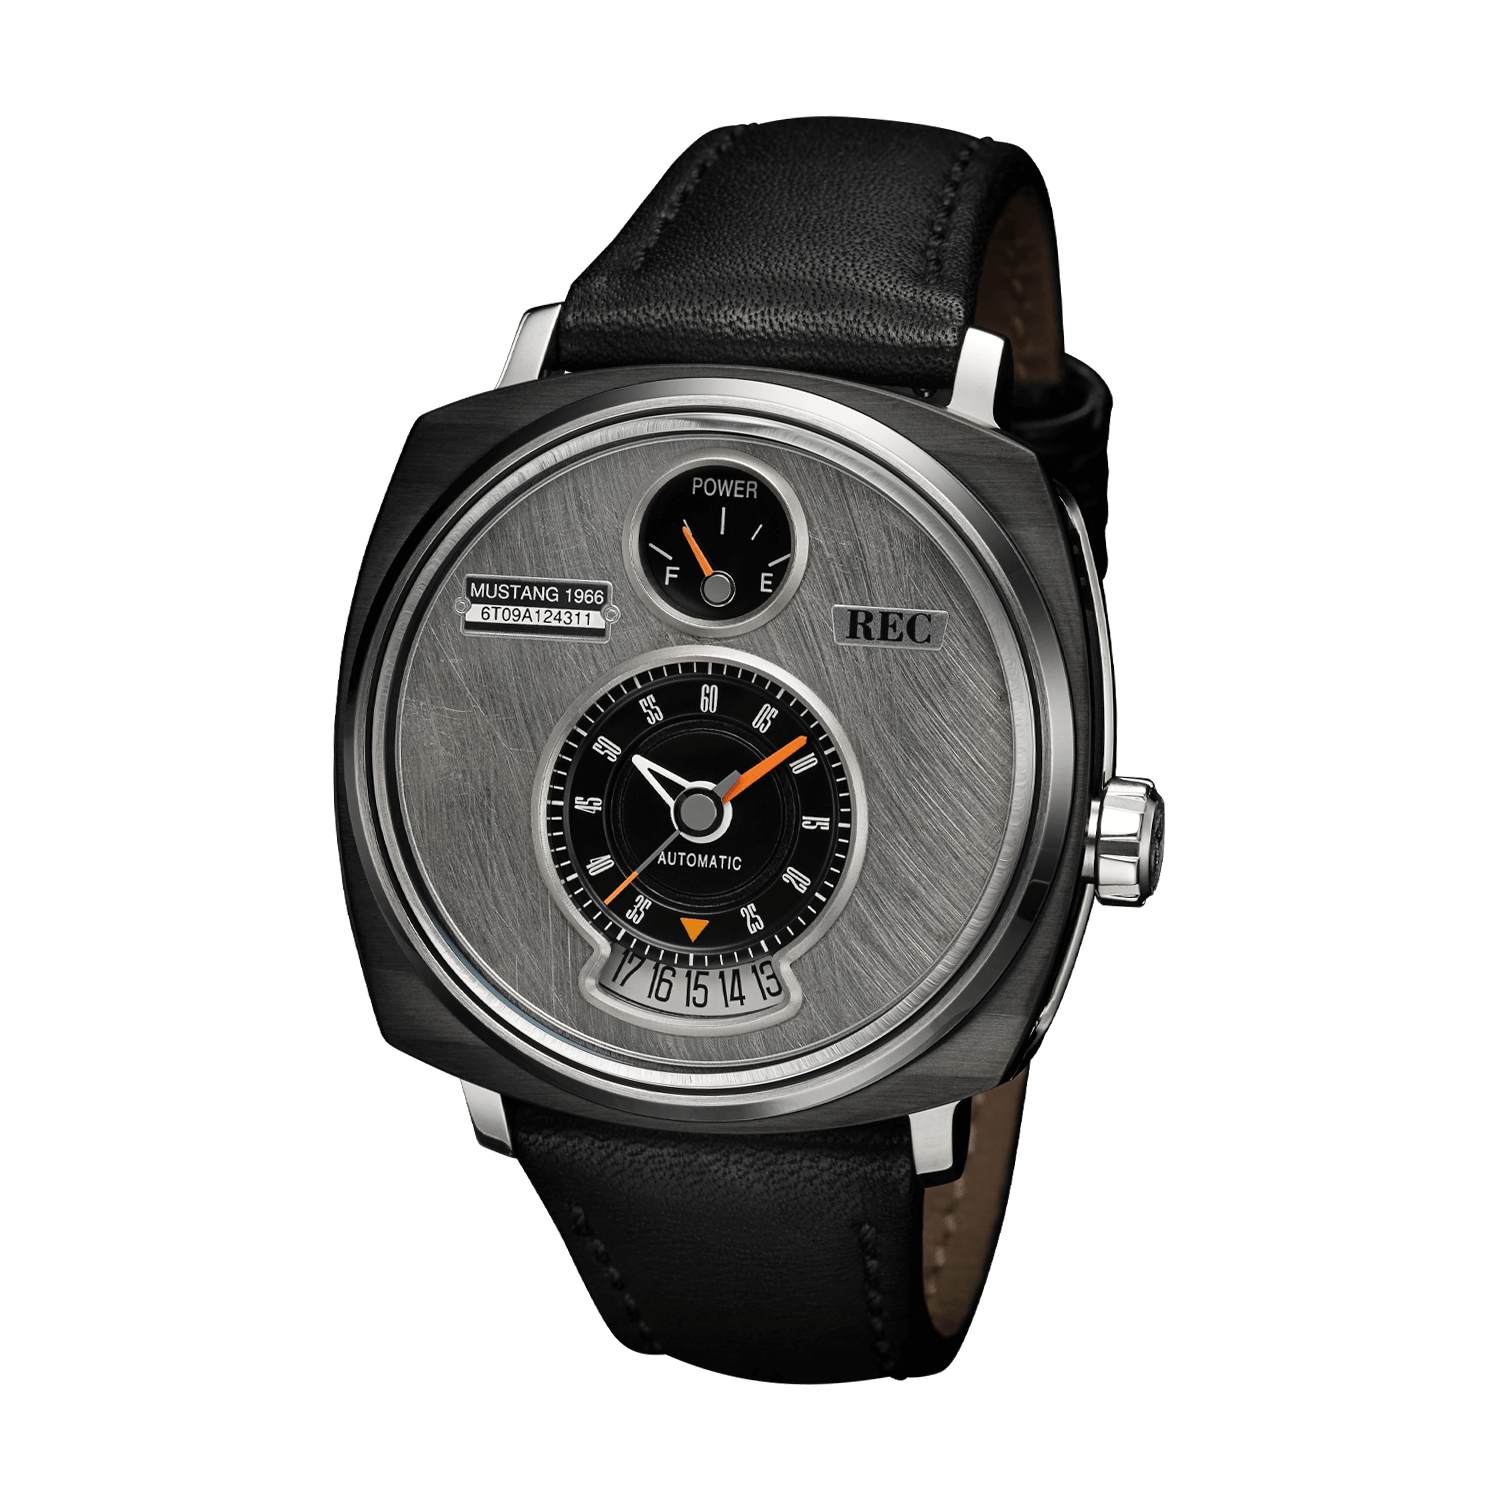 Frisk REC Watches Official Site - Every Watch Tells A Story KV-21